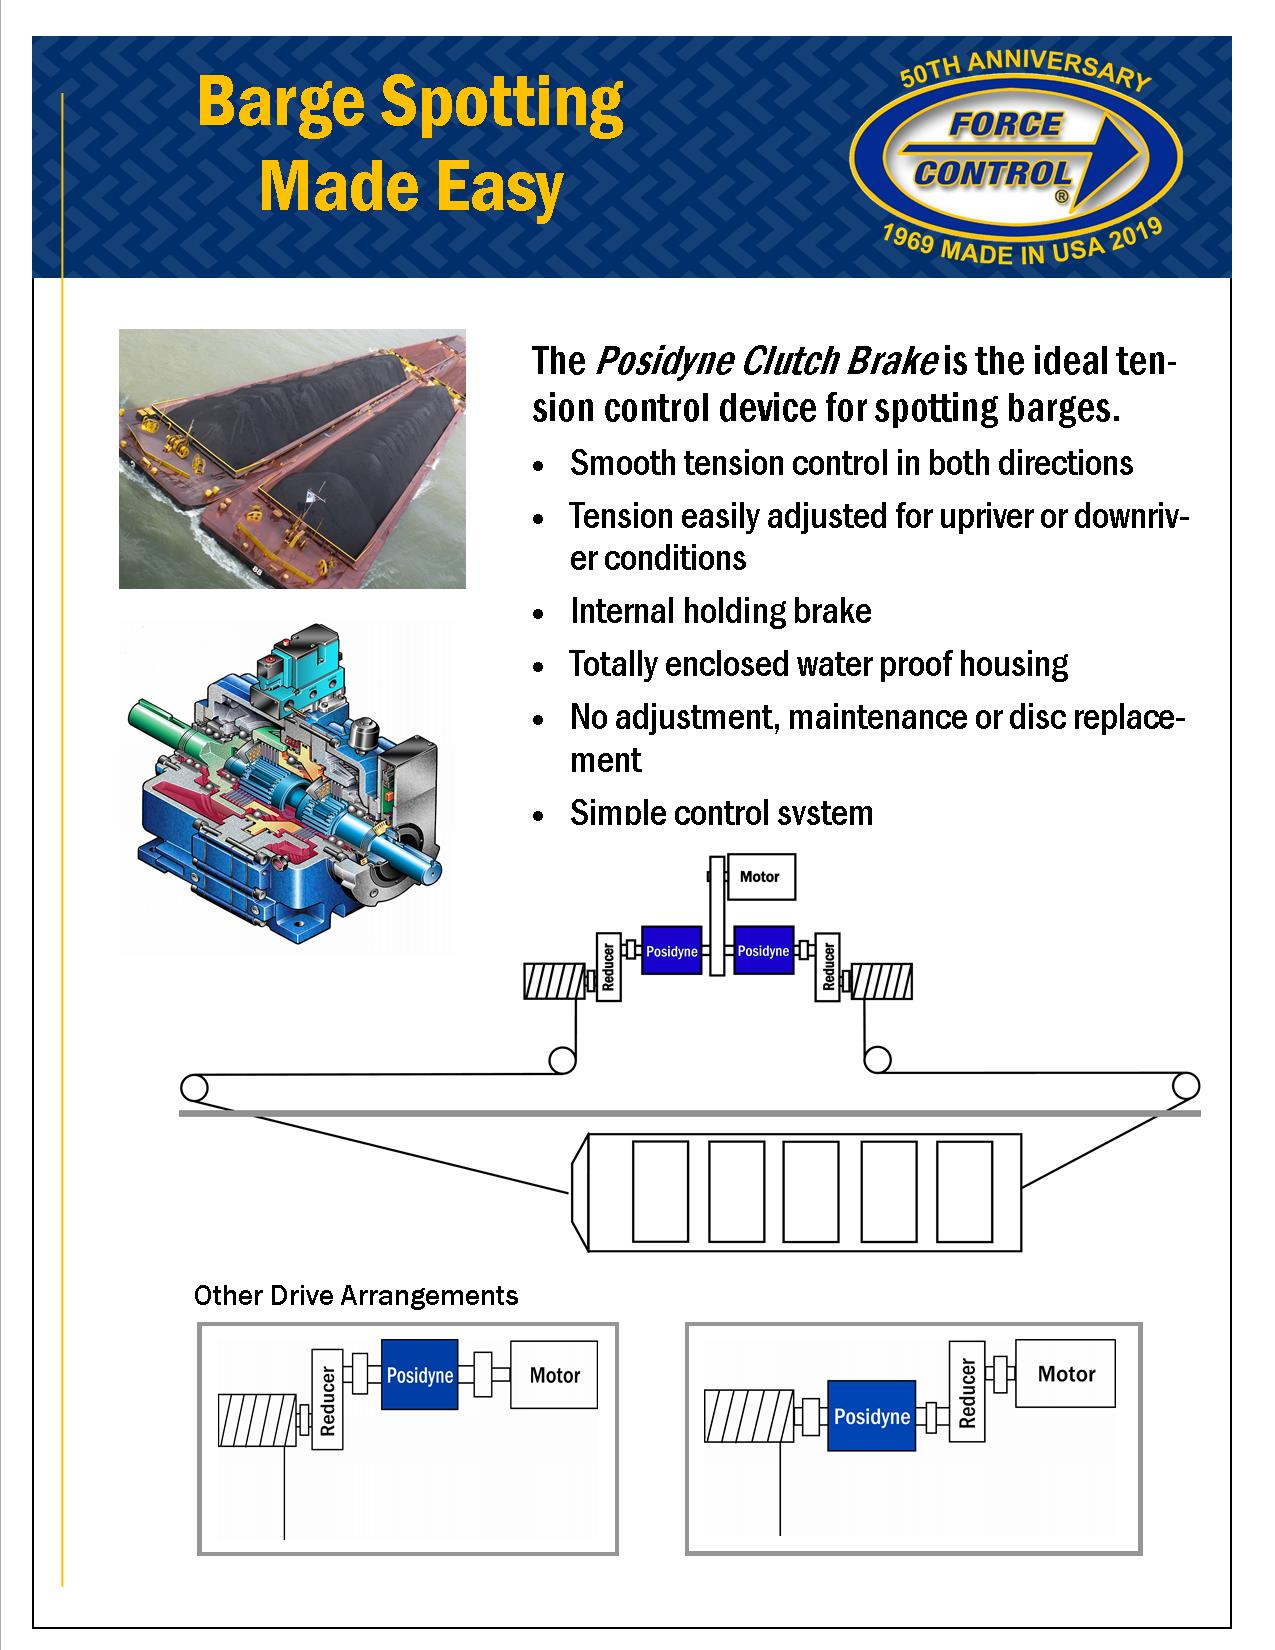 Barge Spotting Made Easy Flyer Cover 051519